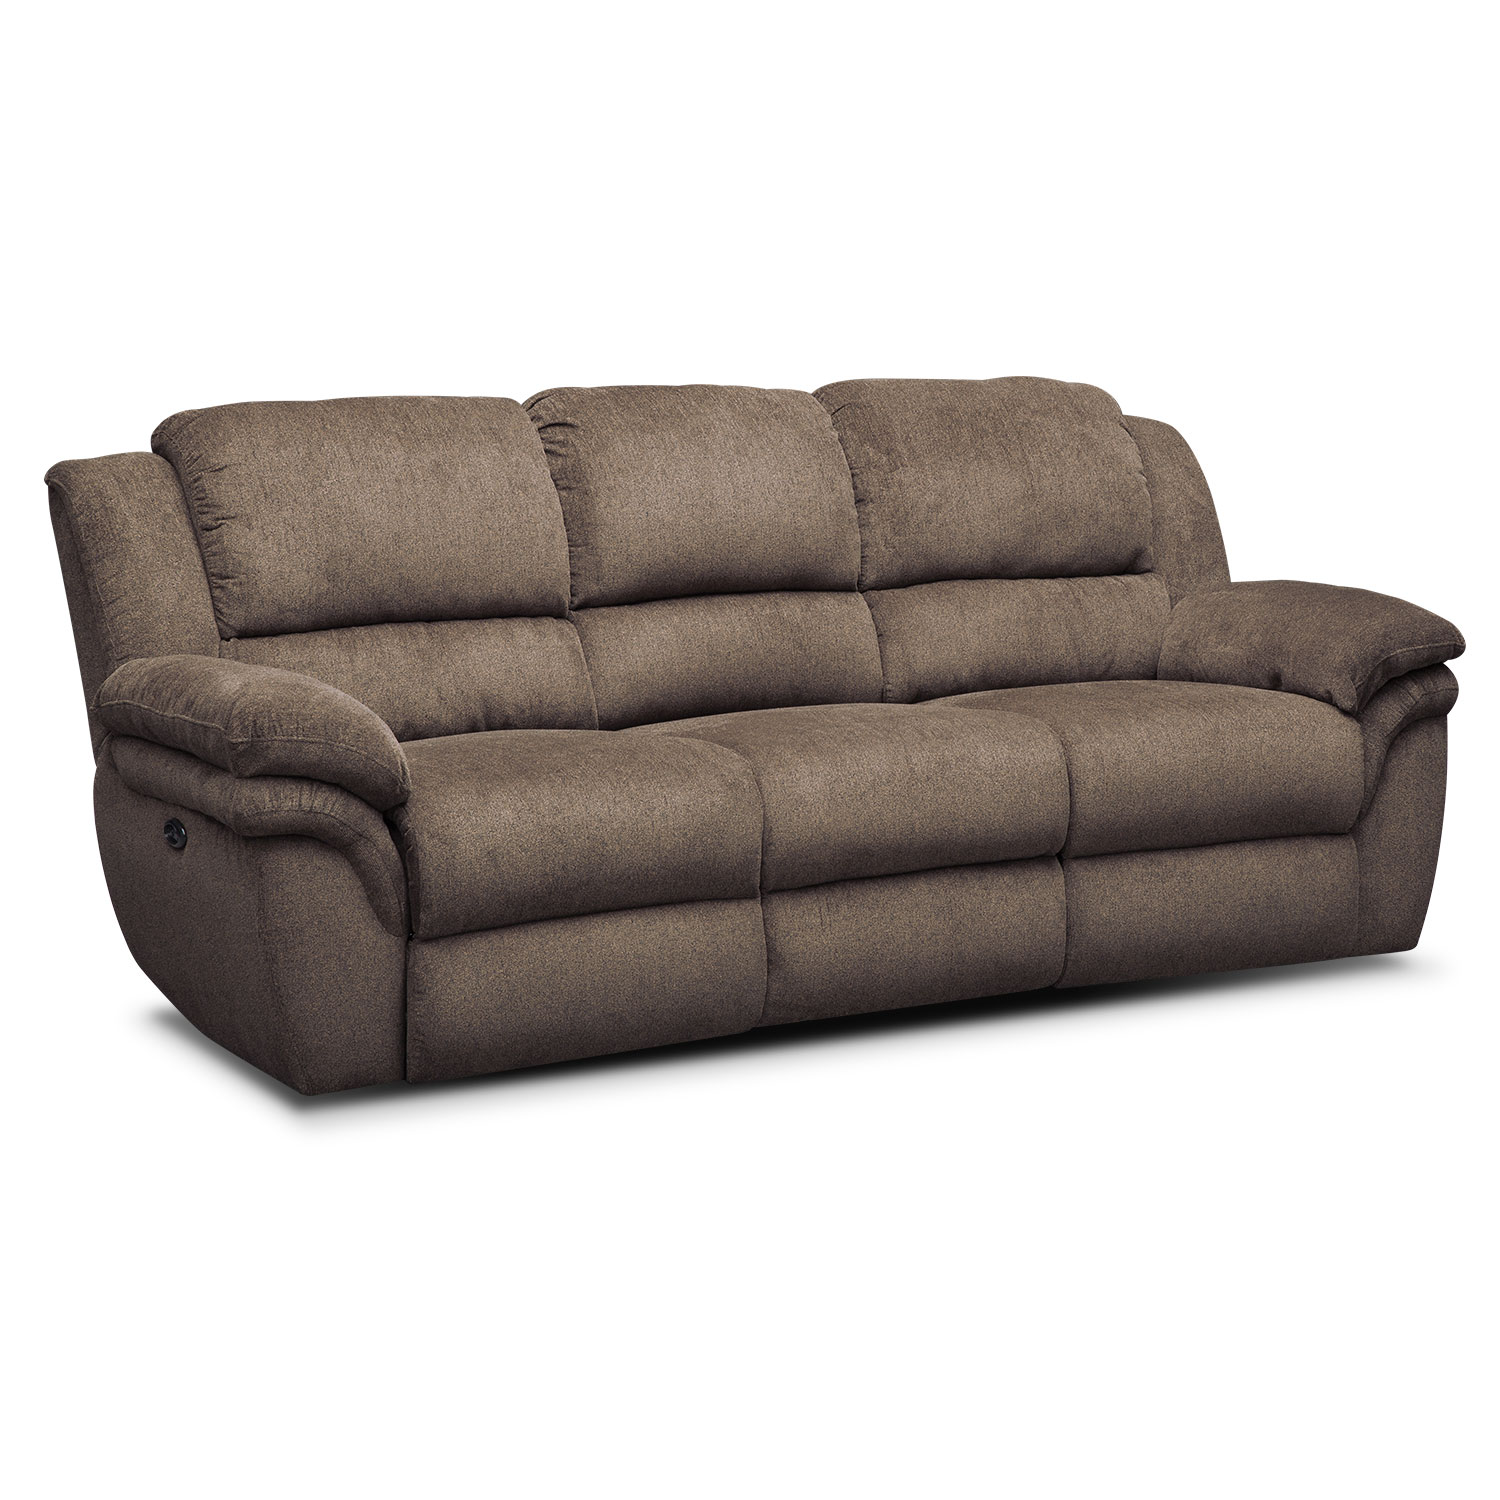 Aldo Power Reclining Sofa Loveseat And Recliner Set